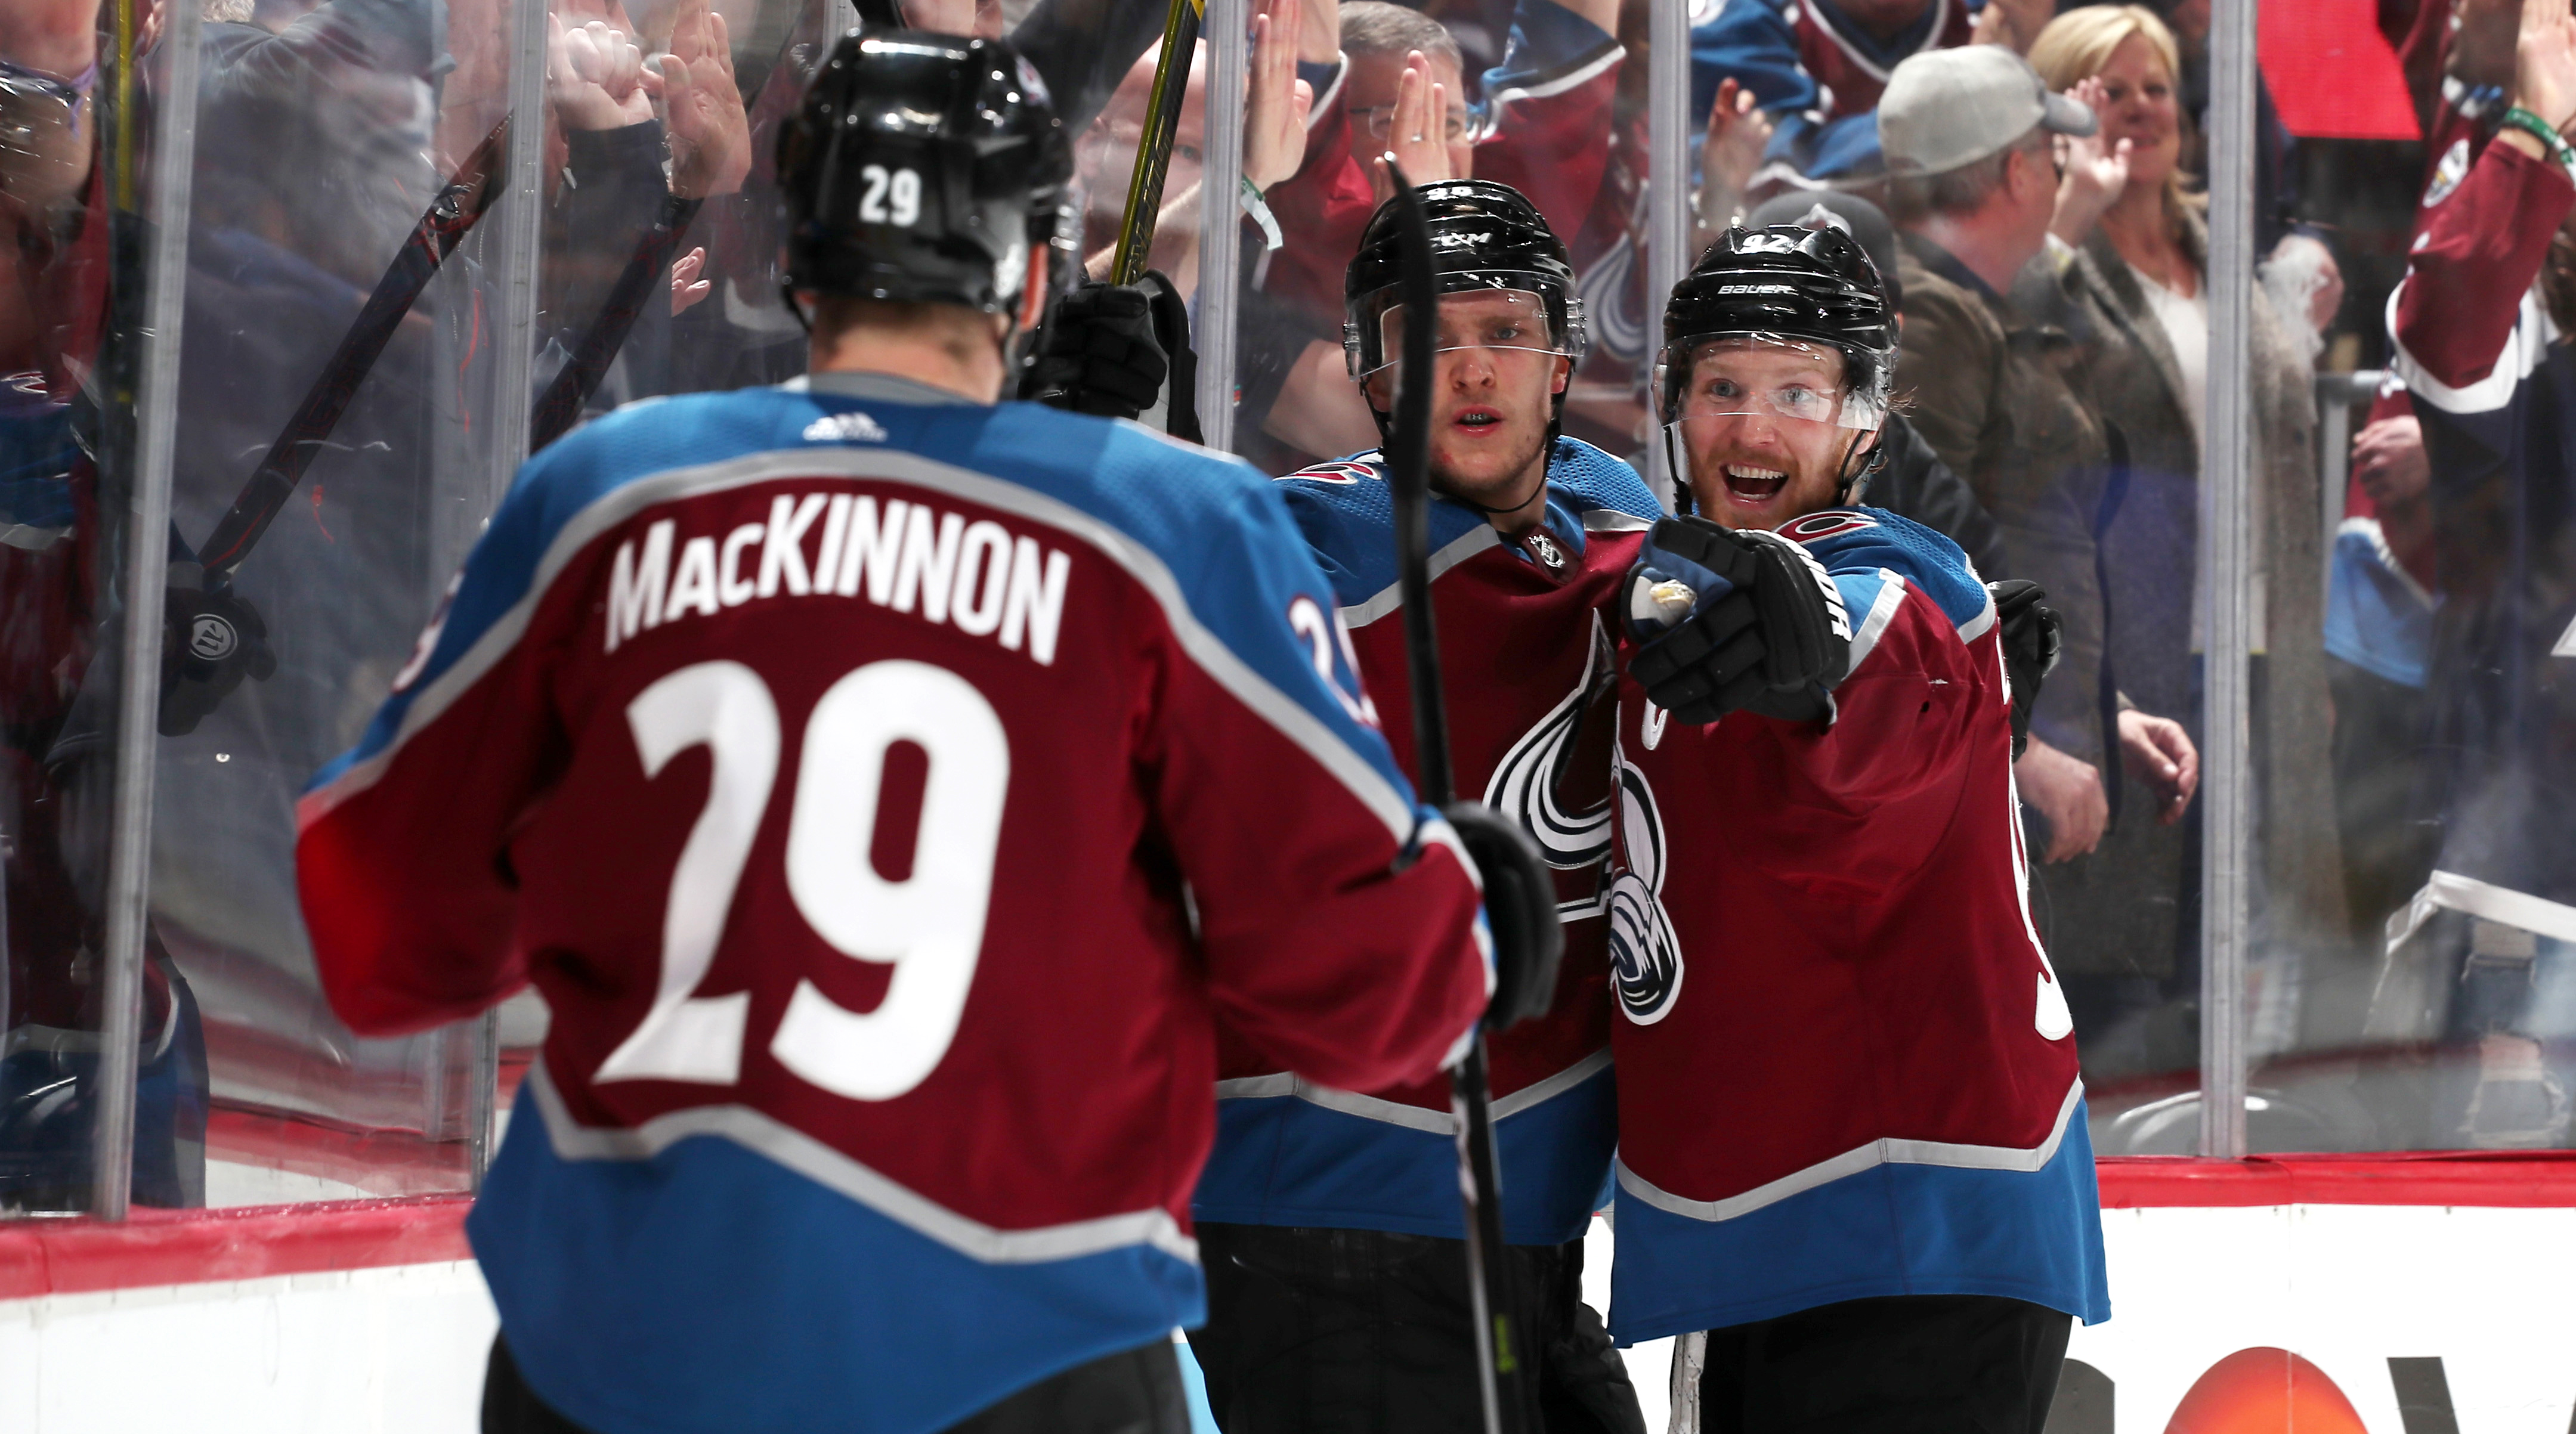 playoff-roundup-avalanche-push-flames-to-brink-to-set-up-potential-first-round-shocker